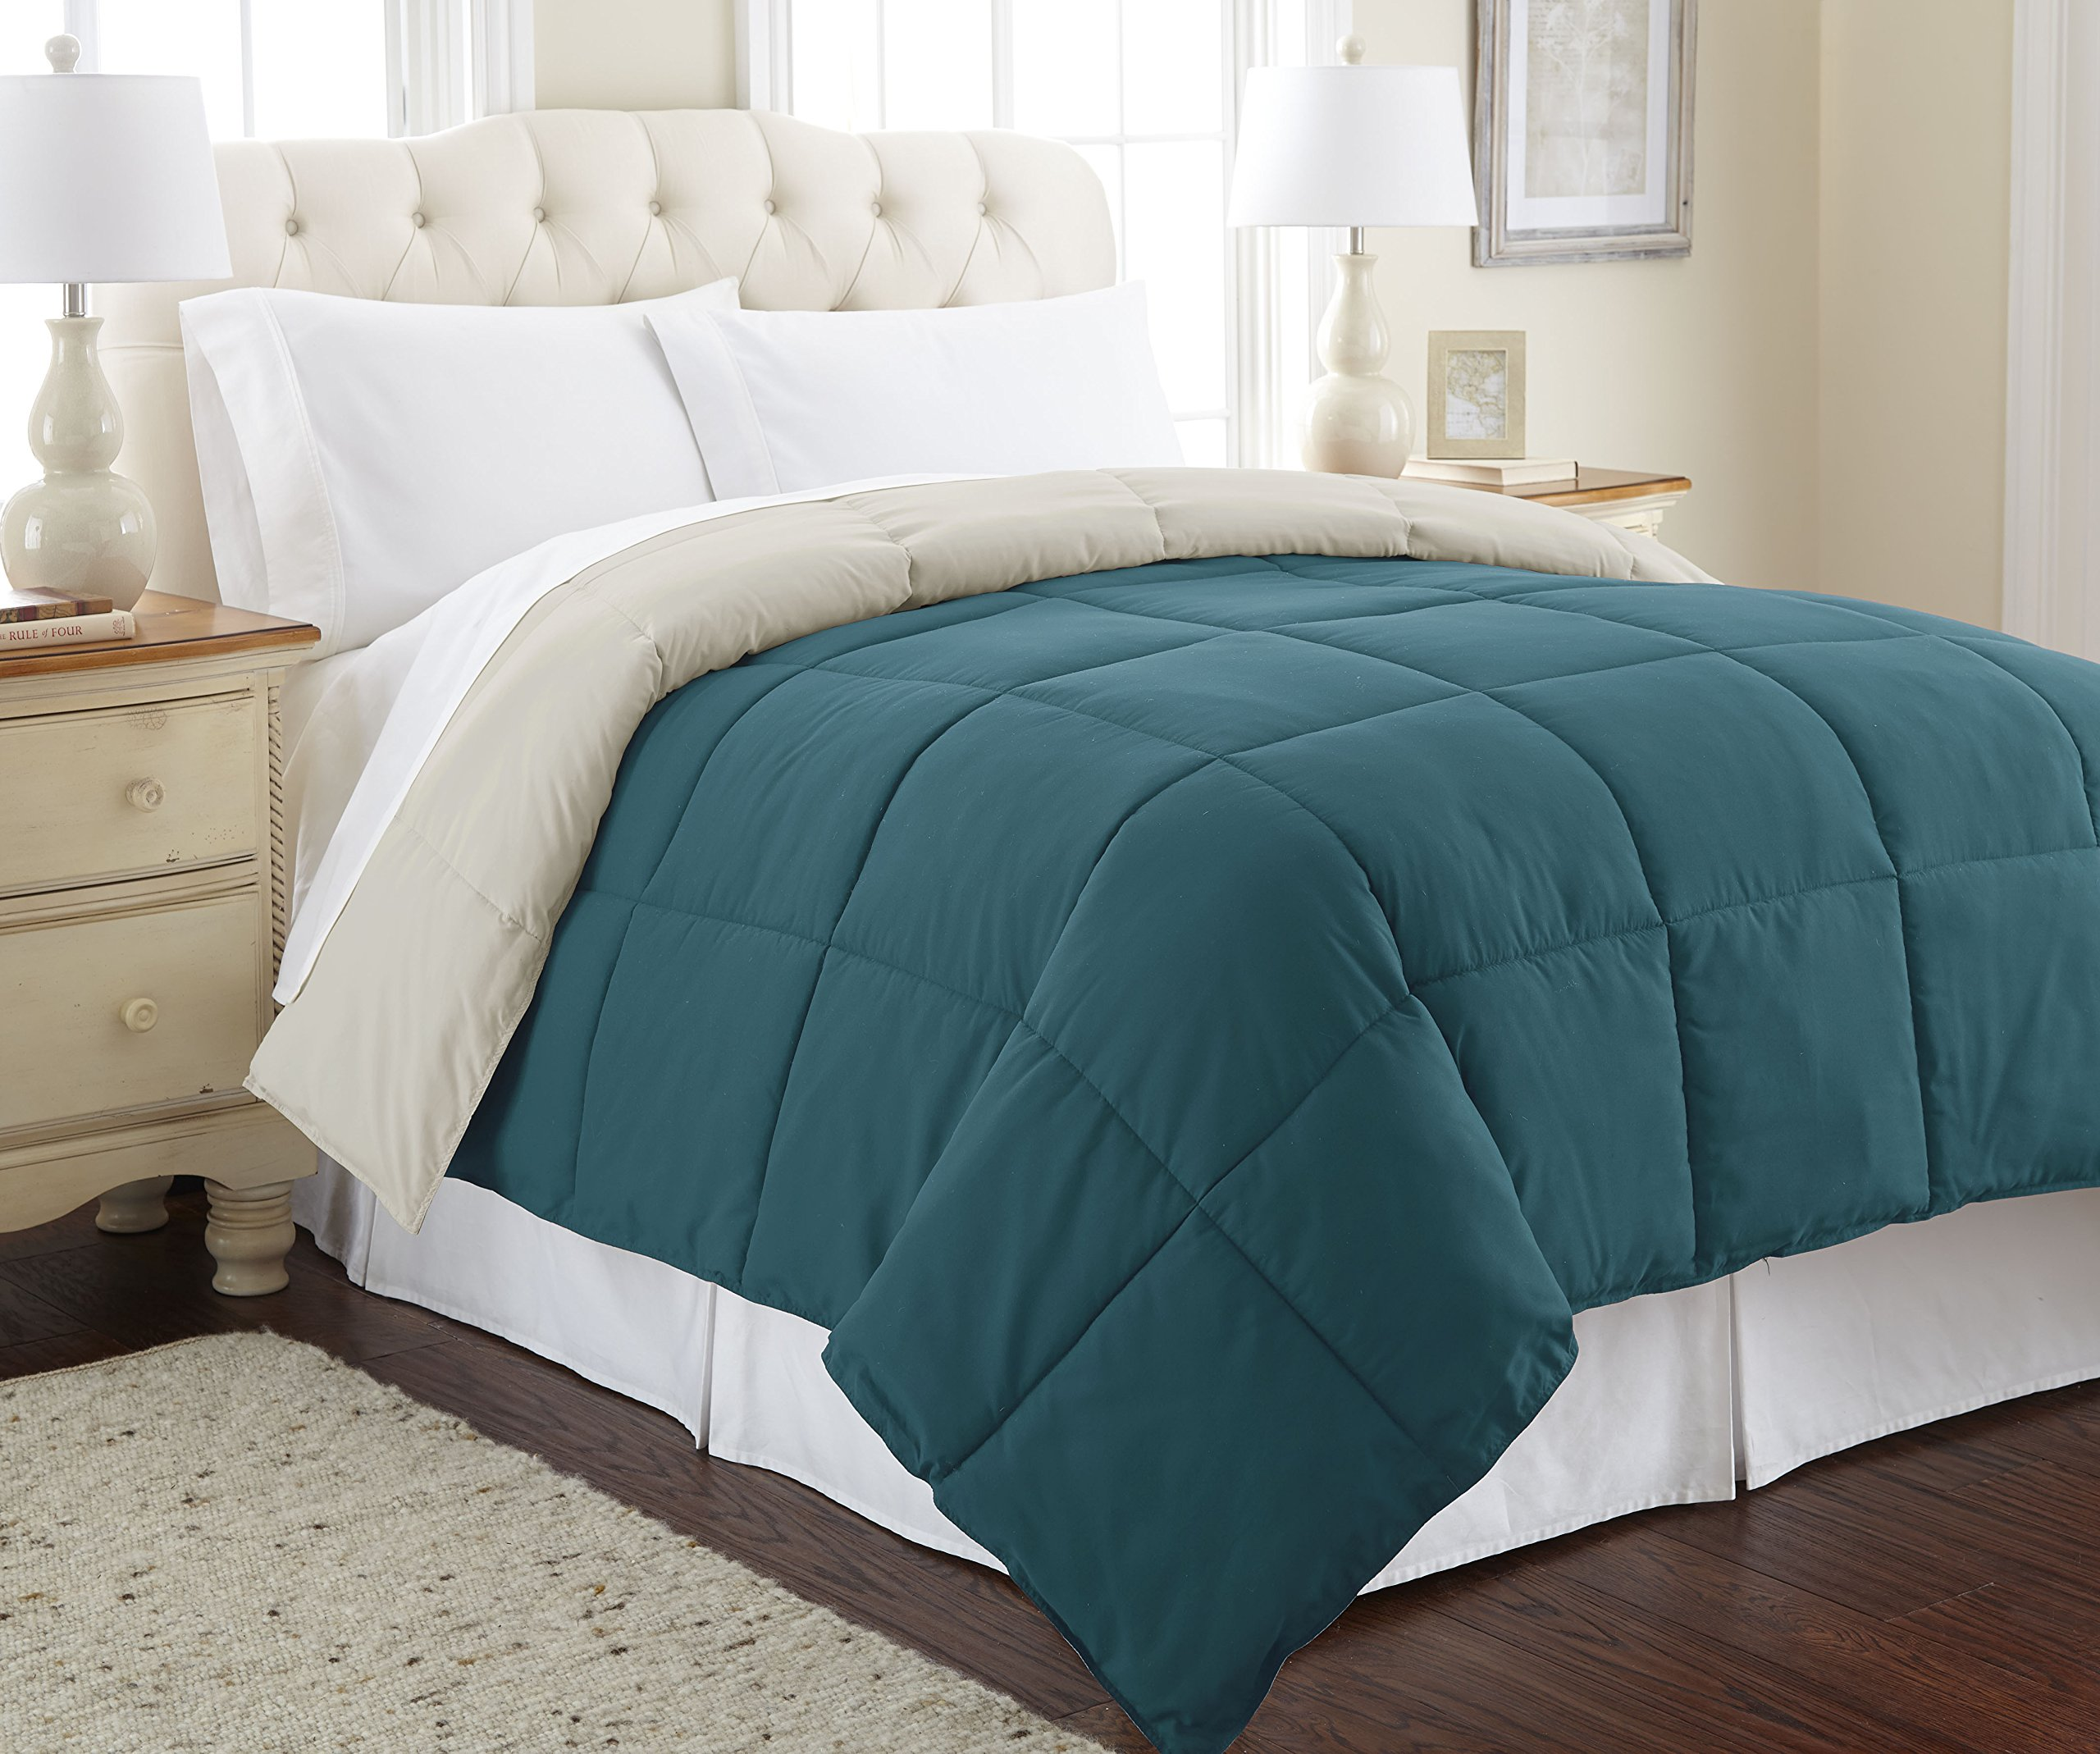 Amrapur Overseas   Goose Down Alternative Microfiber Quilted Reversible Comforter/Duvet Insert - Ultra Soft Hypoallergenic Bedding - Medium Warmth for All Seasons - [Queen, Coral Blue/Oatmeal]